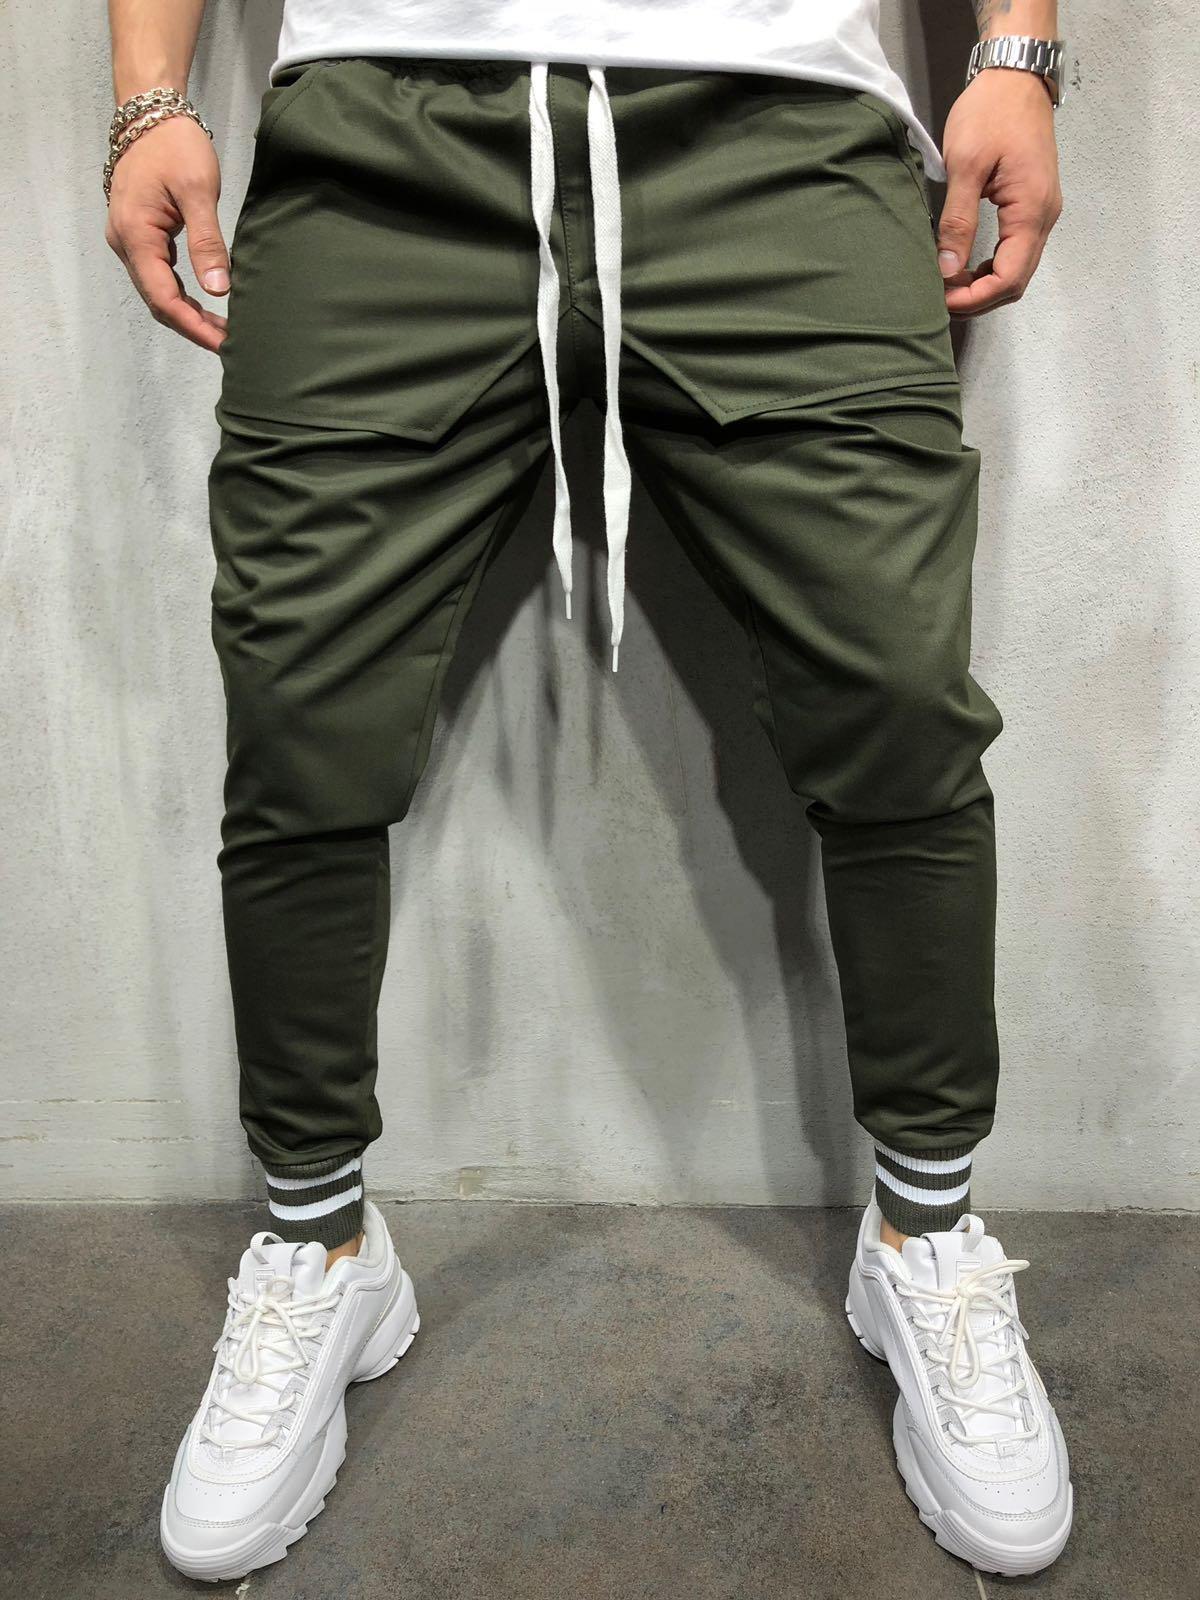 2018 New Fashion Hot Popular Mens Slim Fit Straight Leg Trousers Casual Pencil Jogger Hip Hop Pants Latest Technology Skinny Pants Pants